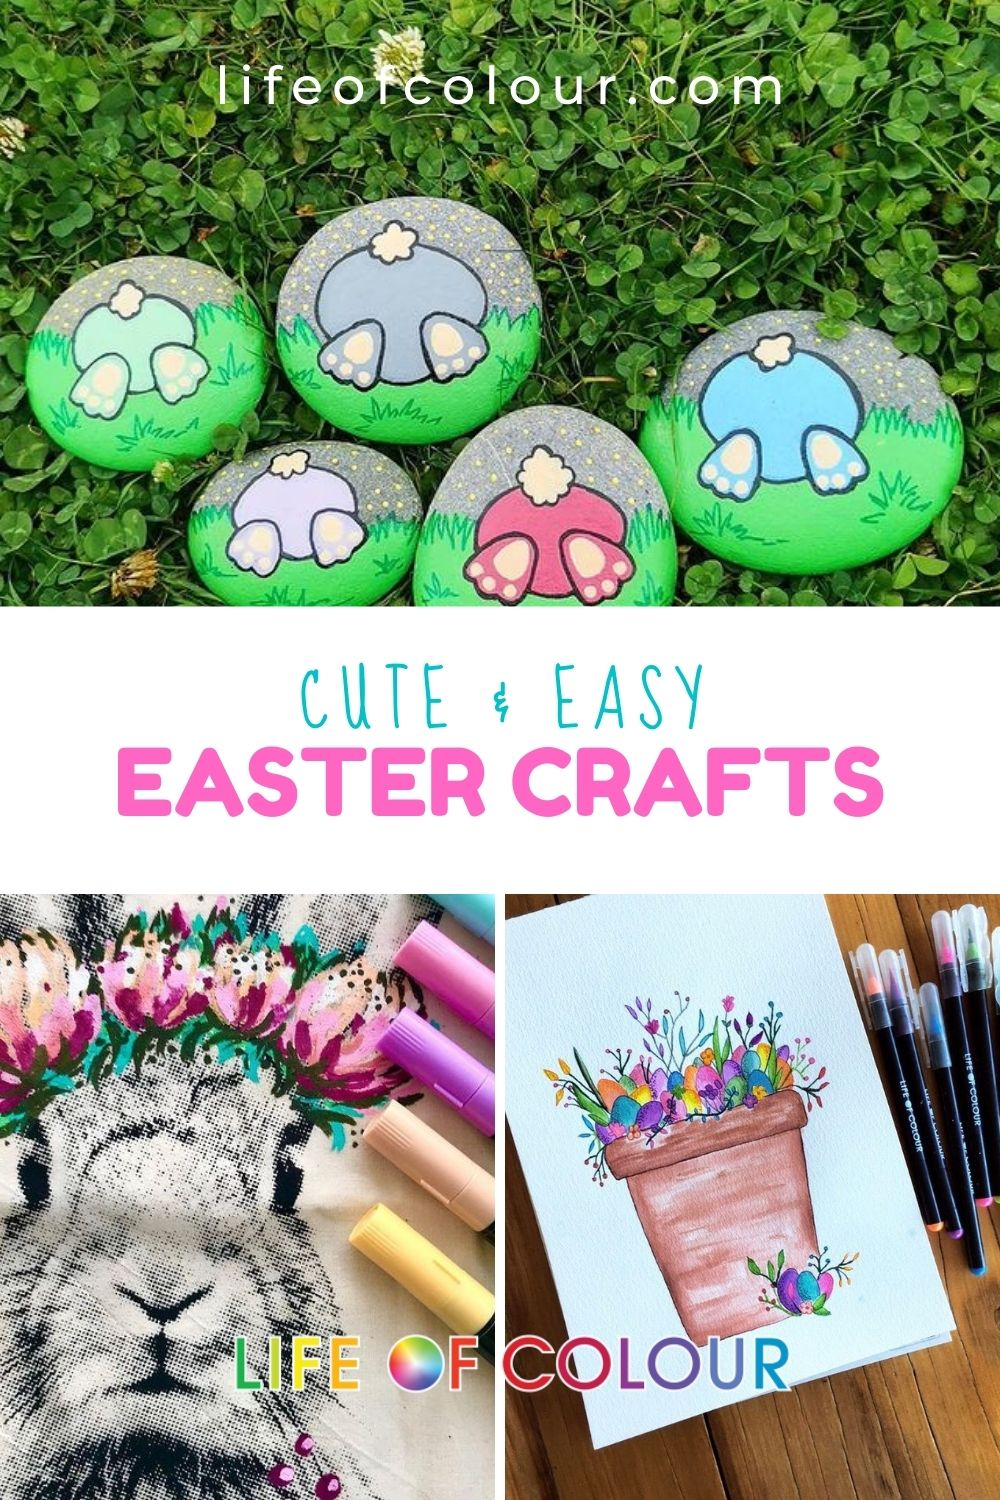 Easter craft ideas you will love to make!